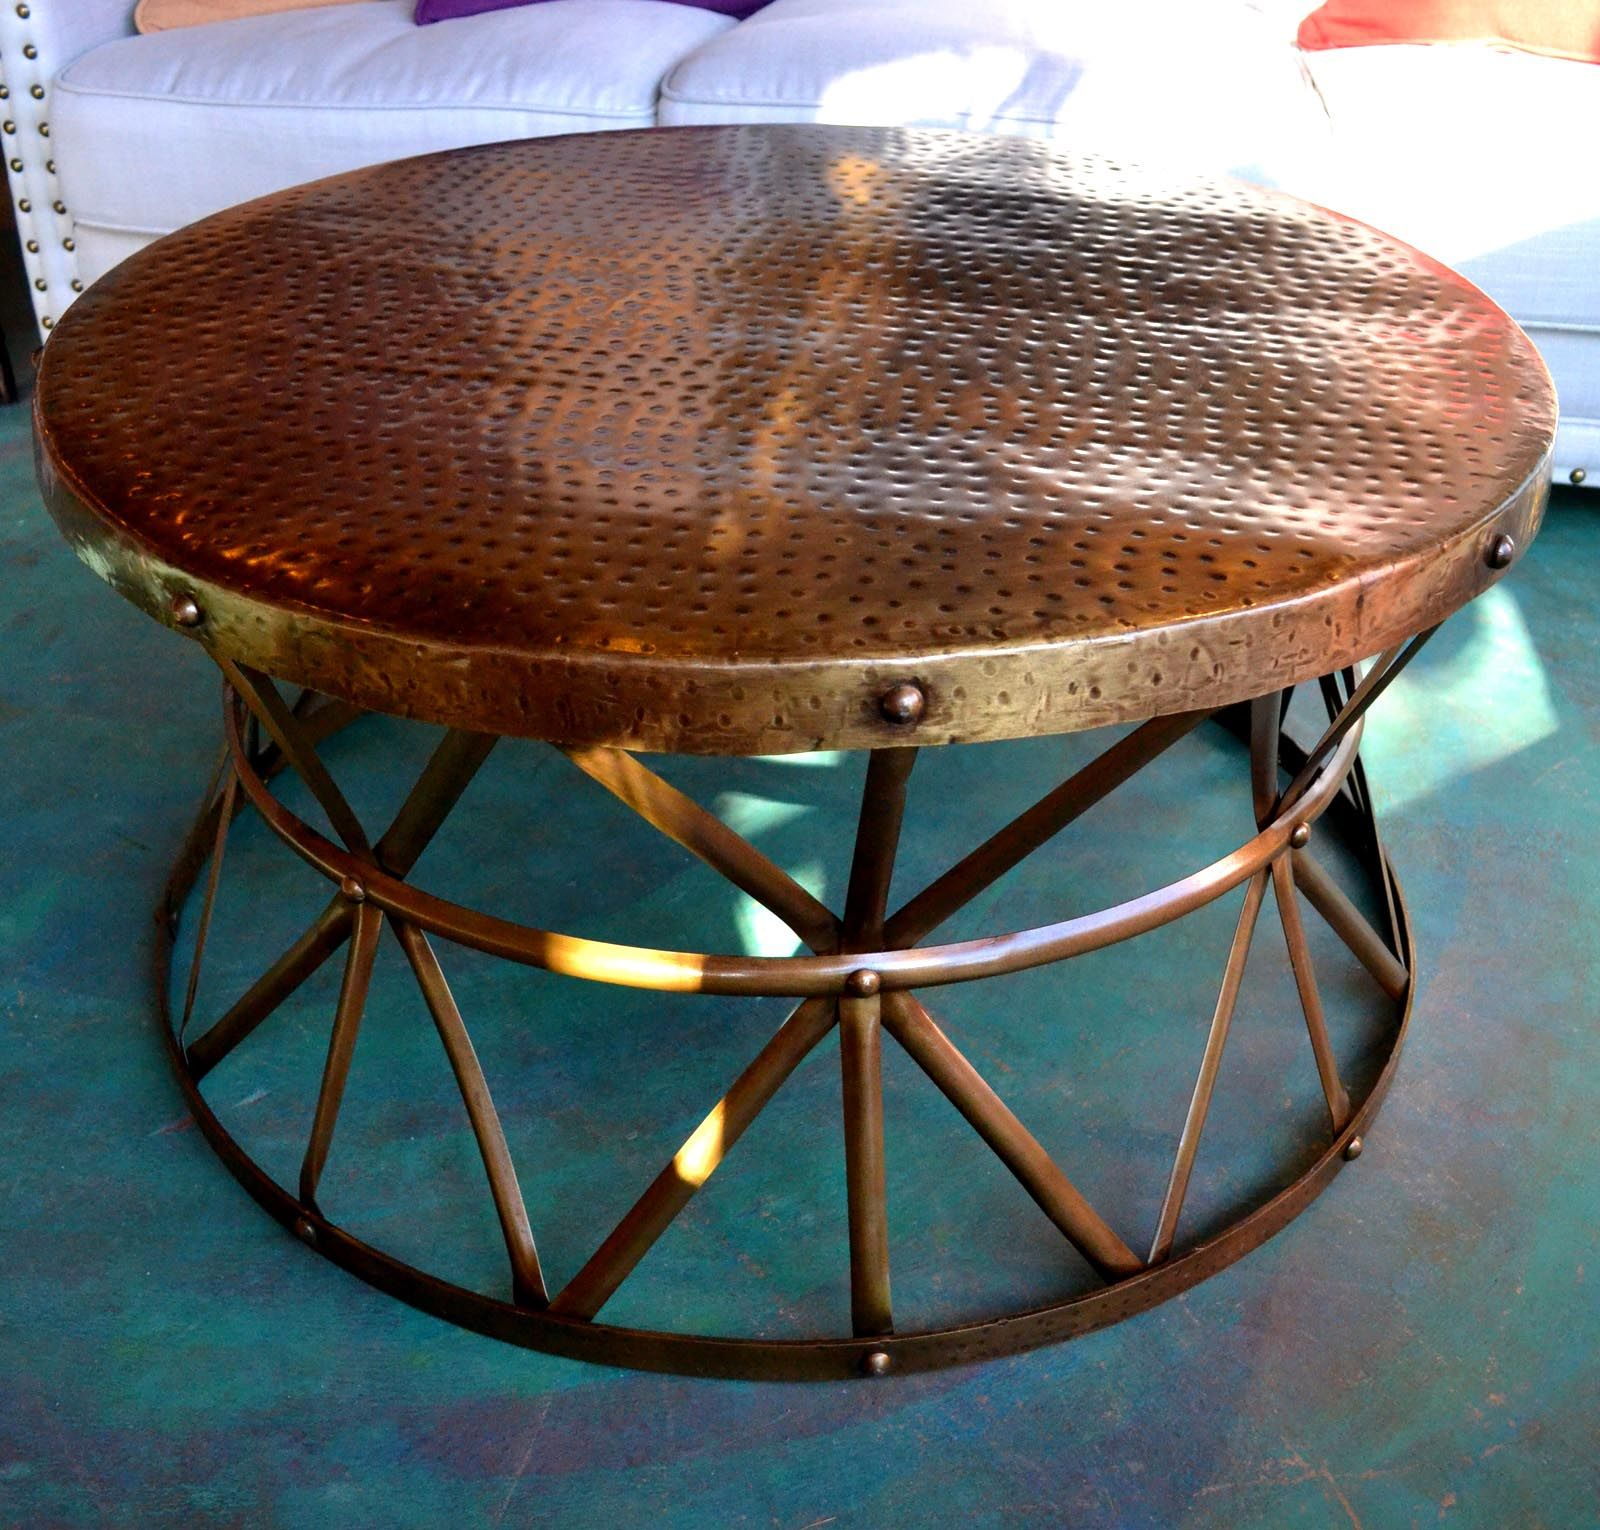 Hammered Copper Coffee Table Coffee Tables Pinterest Copper - Copper drum coffee table